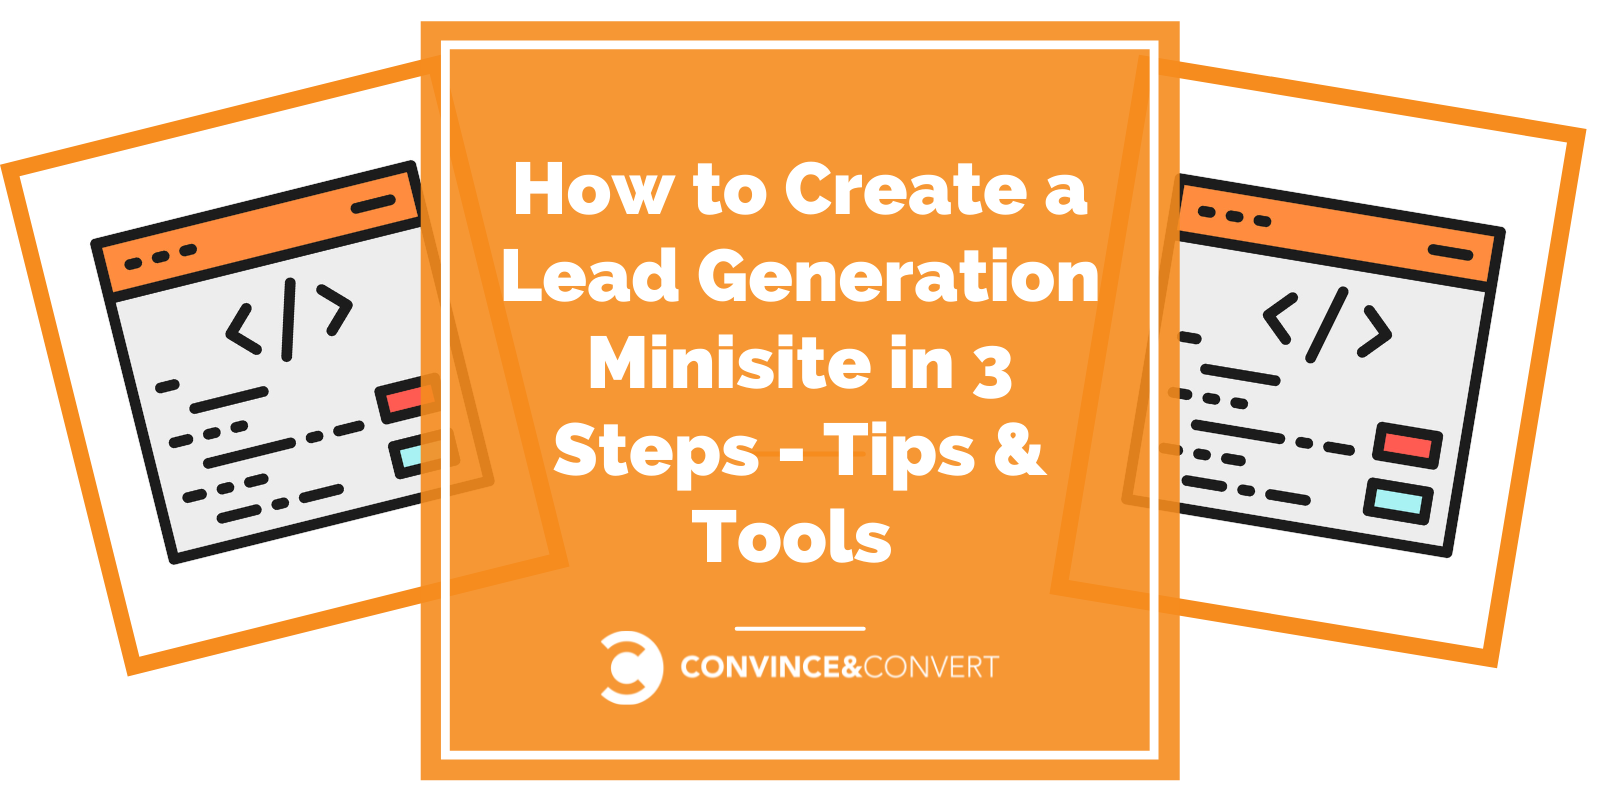 Salvage a Lead Technology Minisite in 3 Steps – Guidelines & Tools